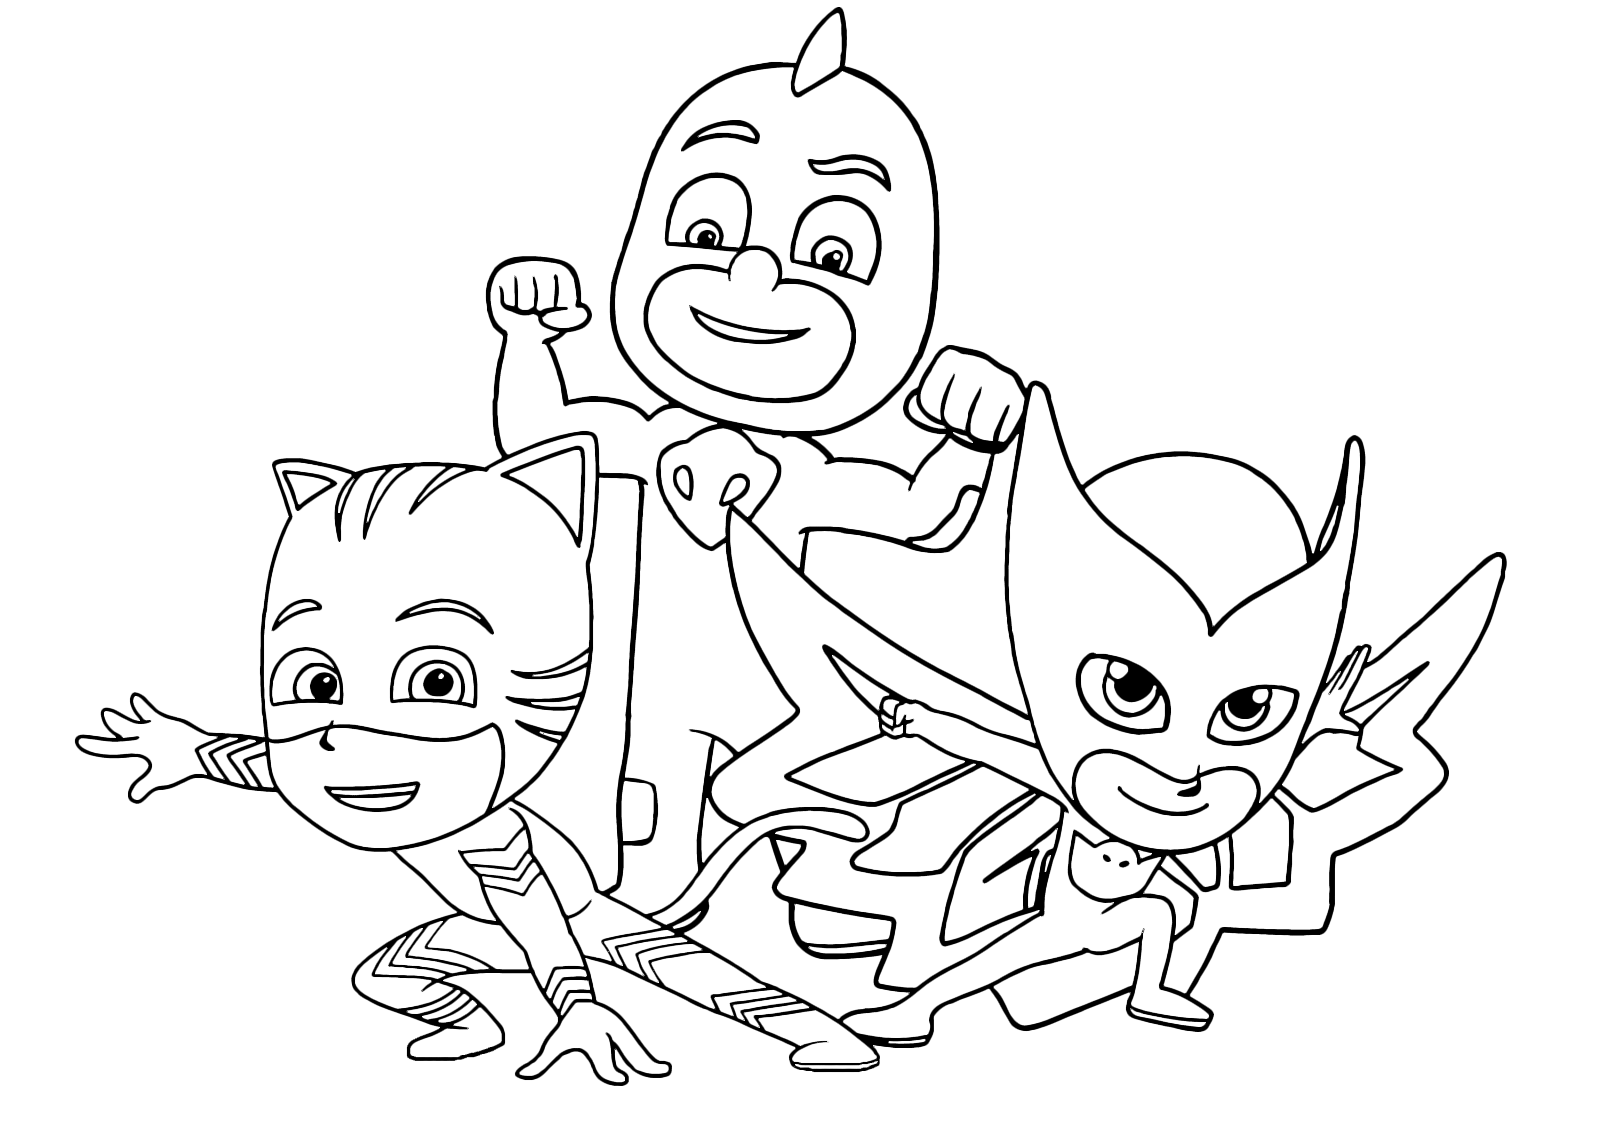 Printable coloring pages pj masks - Printable Coloring Pages Pj Masks Pj Masks Team Ready To Defend The City Download